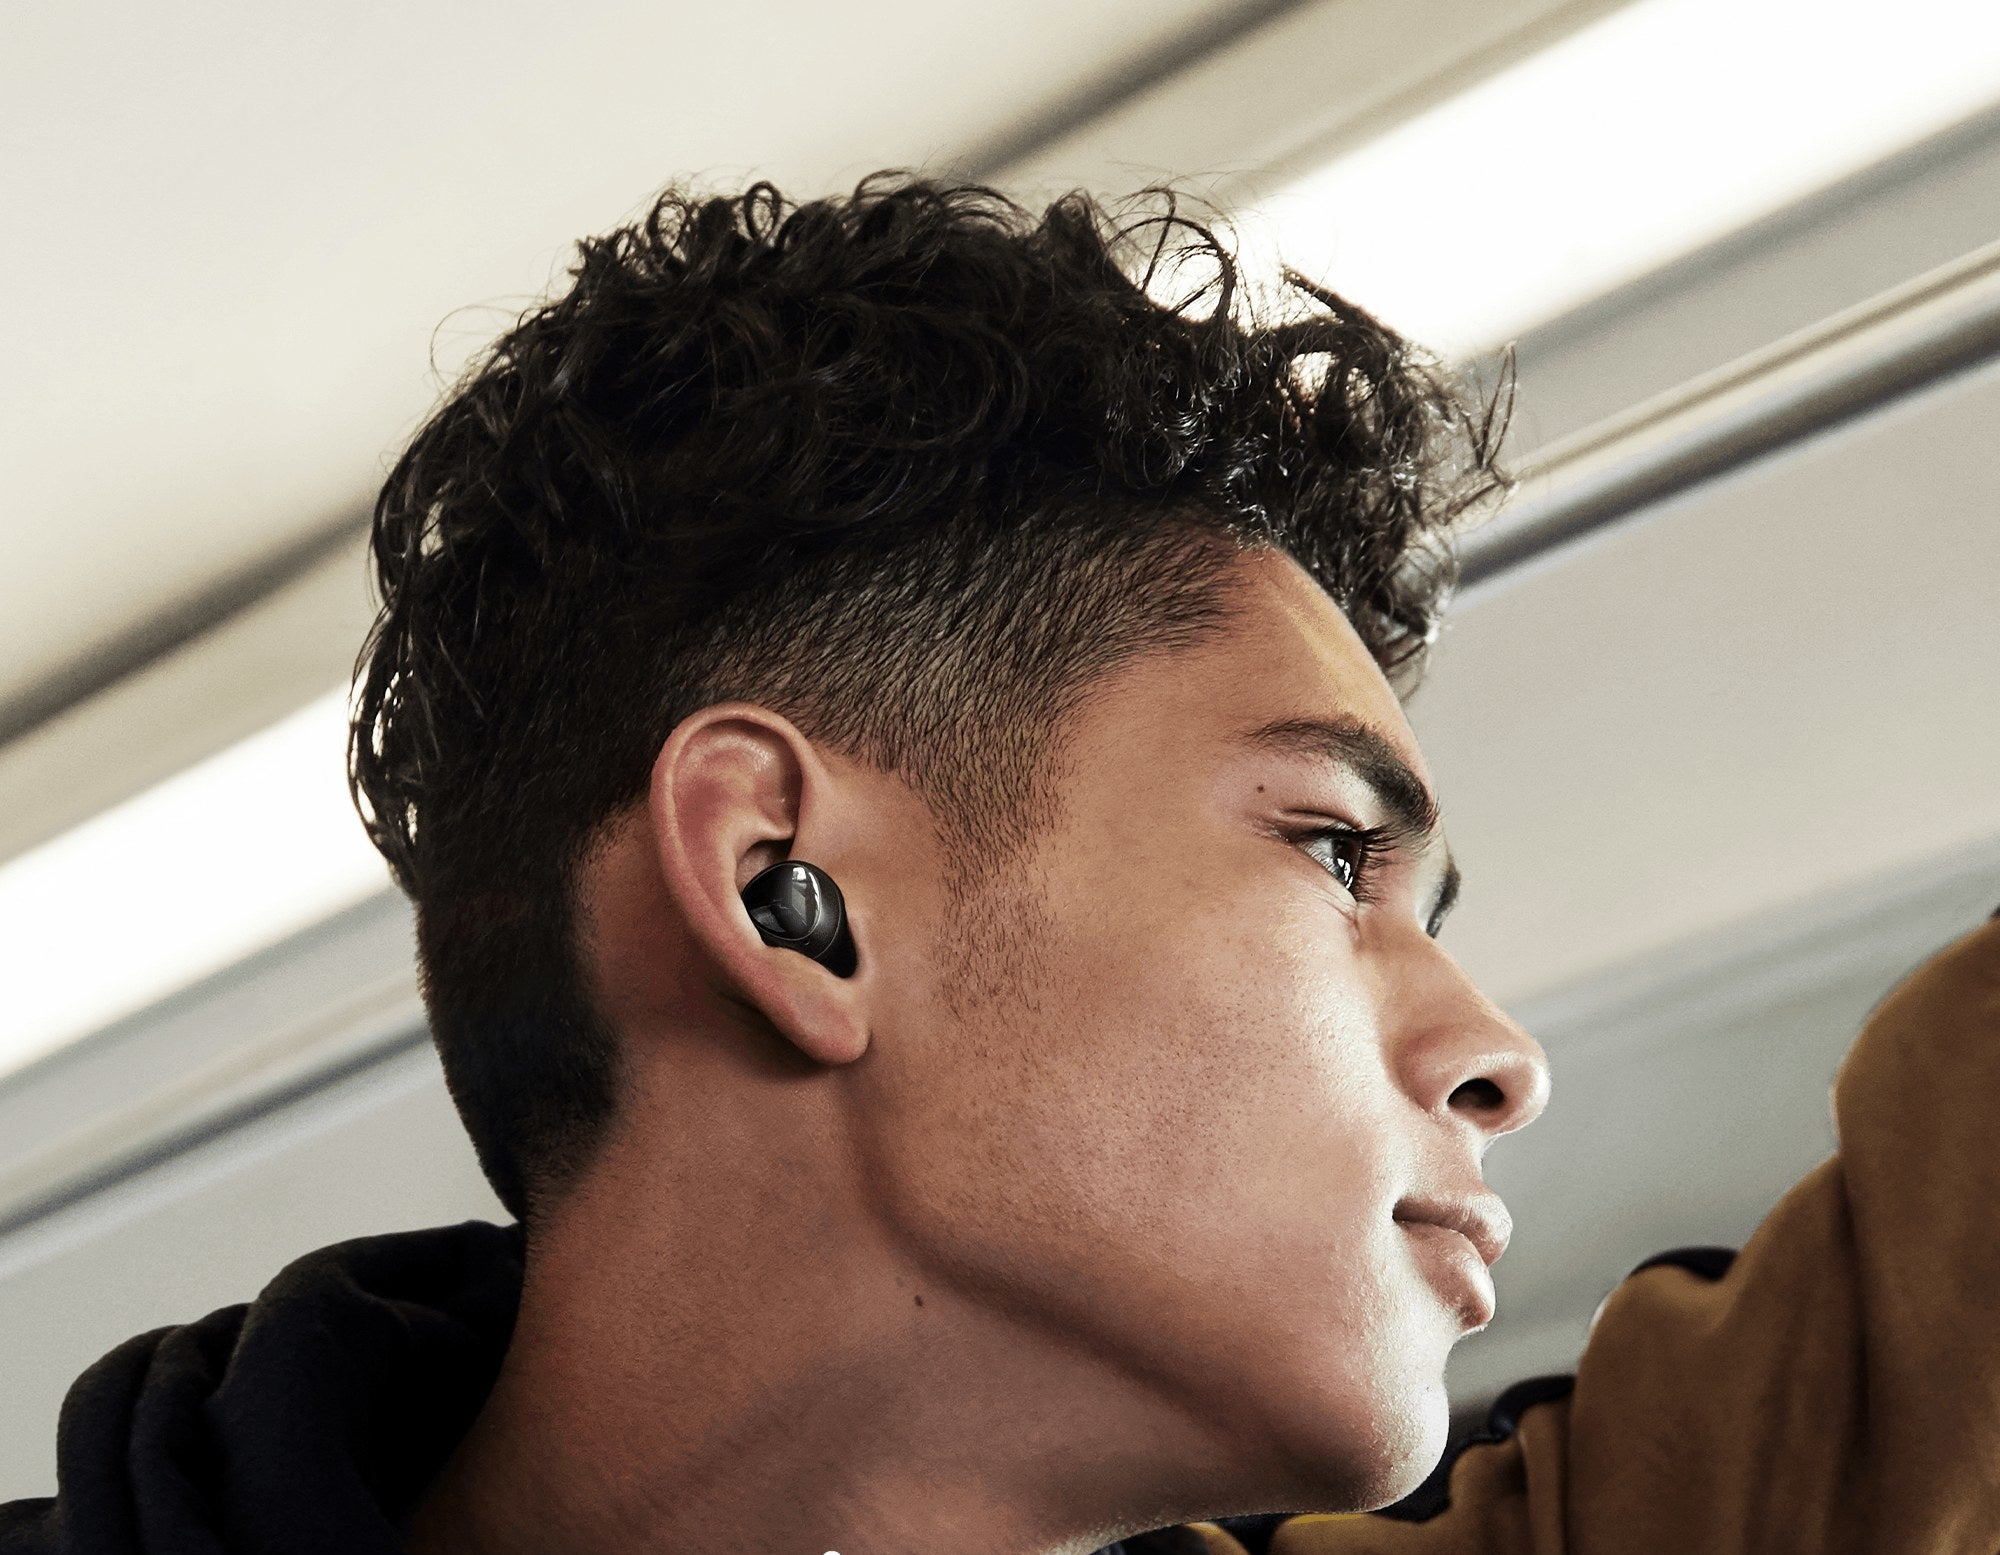 A model wearing the earbuds